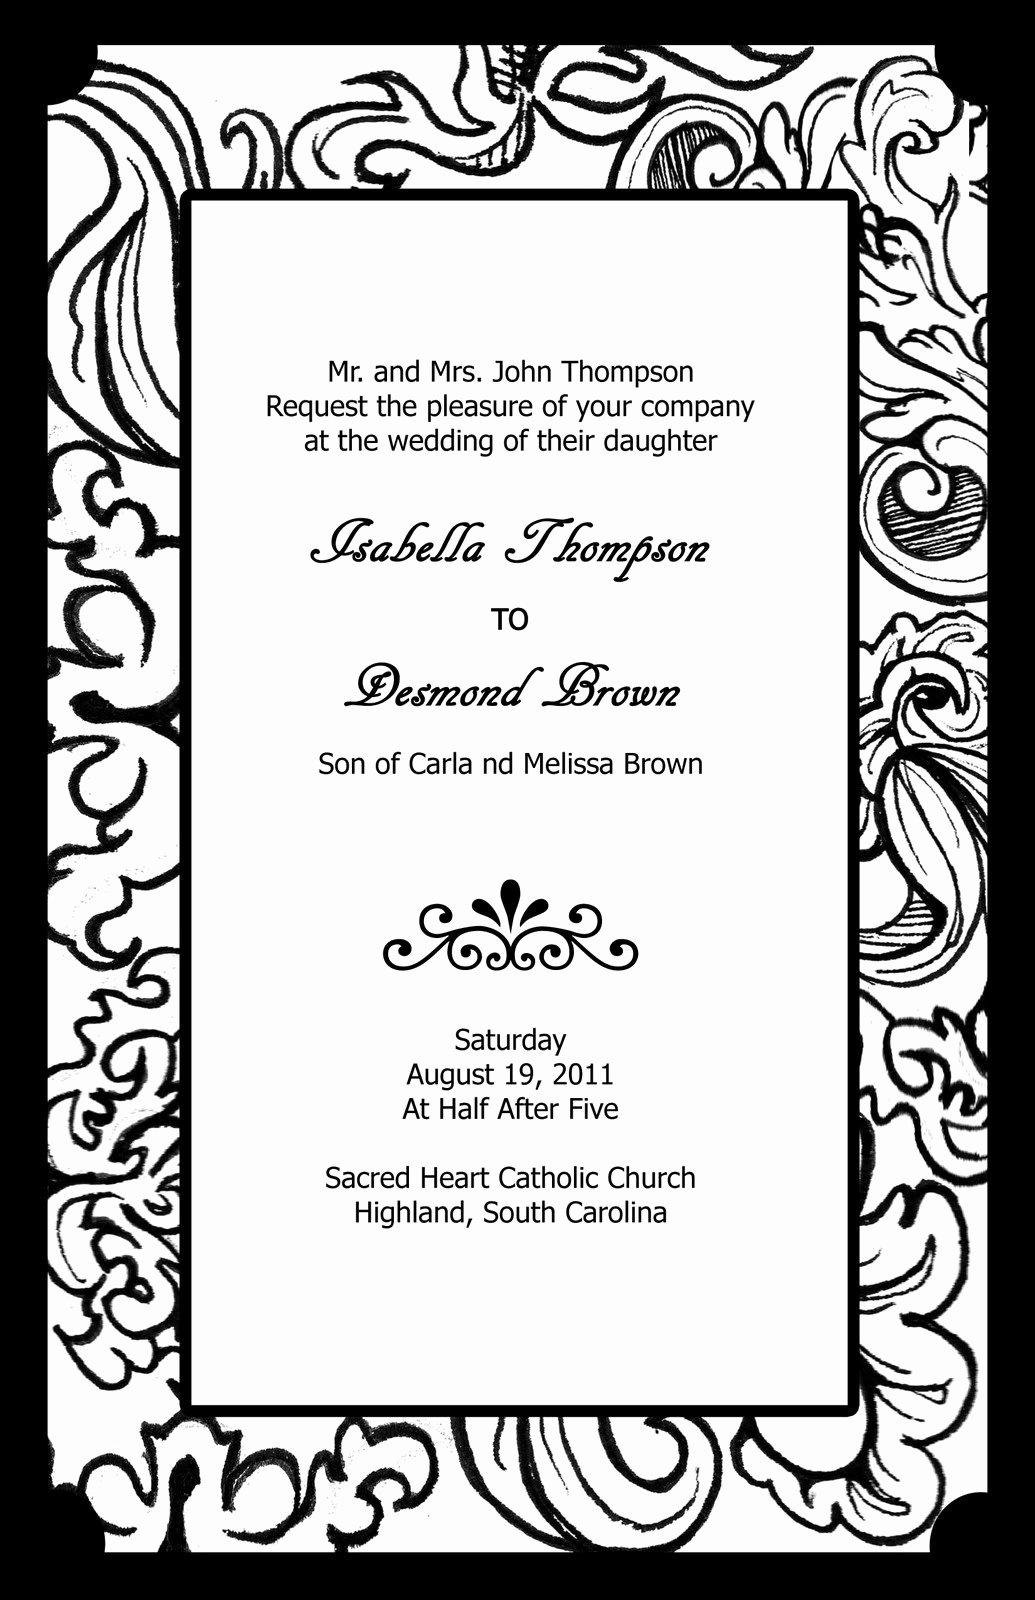 Black and White Invitation Template Unique Blank Wedding Invitation Templates Black and White